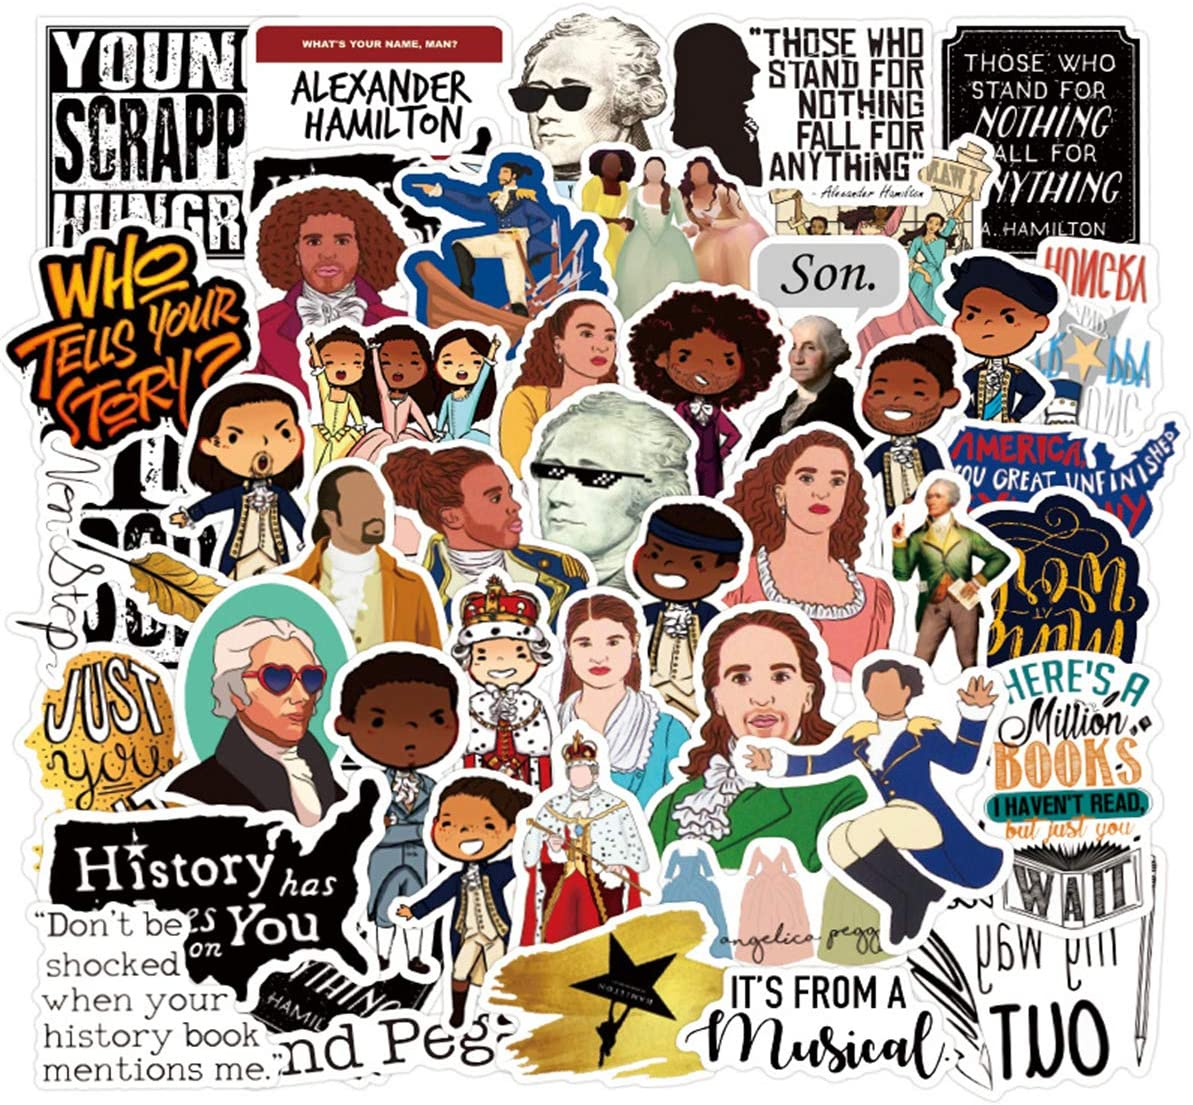 50pcs Alexander Hamilton Vinyls Stickers Laptop Sticker Waterproof Stickers Luggage Skateboard Water Bottle Stickers Decal Bicycle Bumper Snowboard Decorate Gift for Kid. /Hamilton